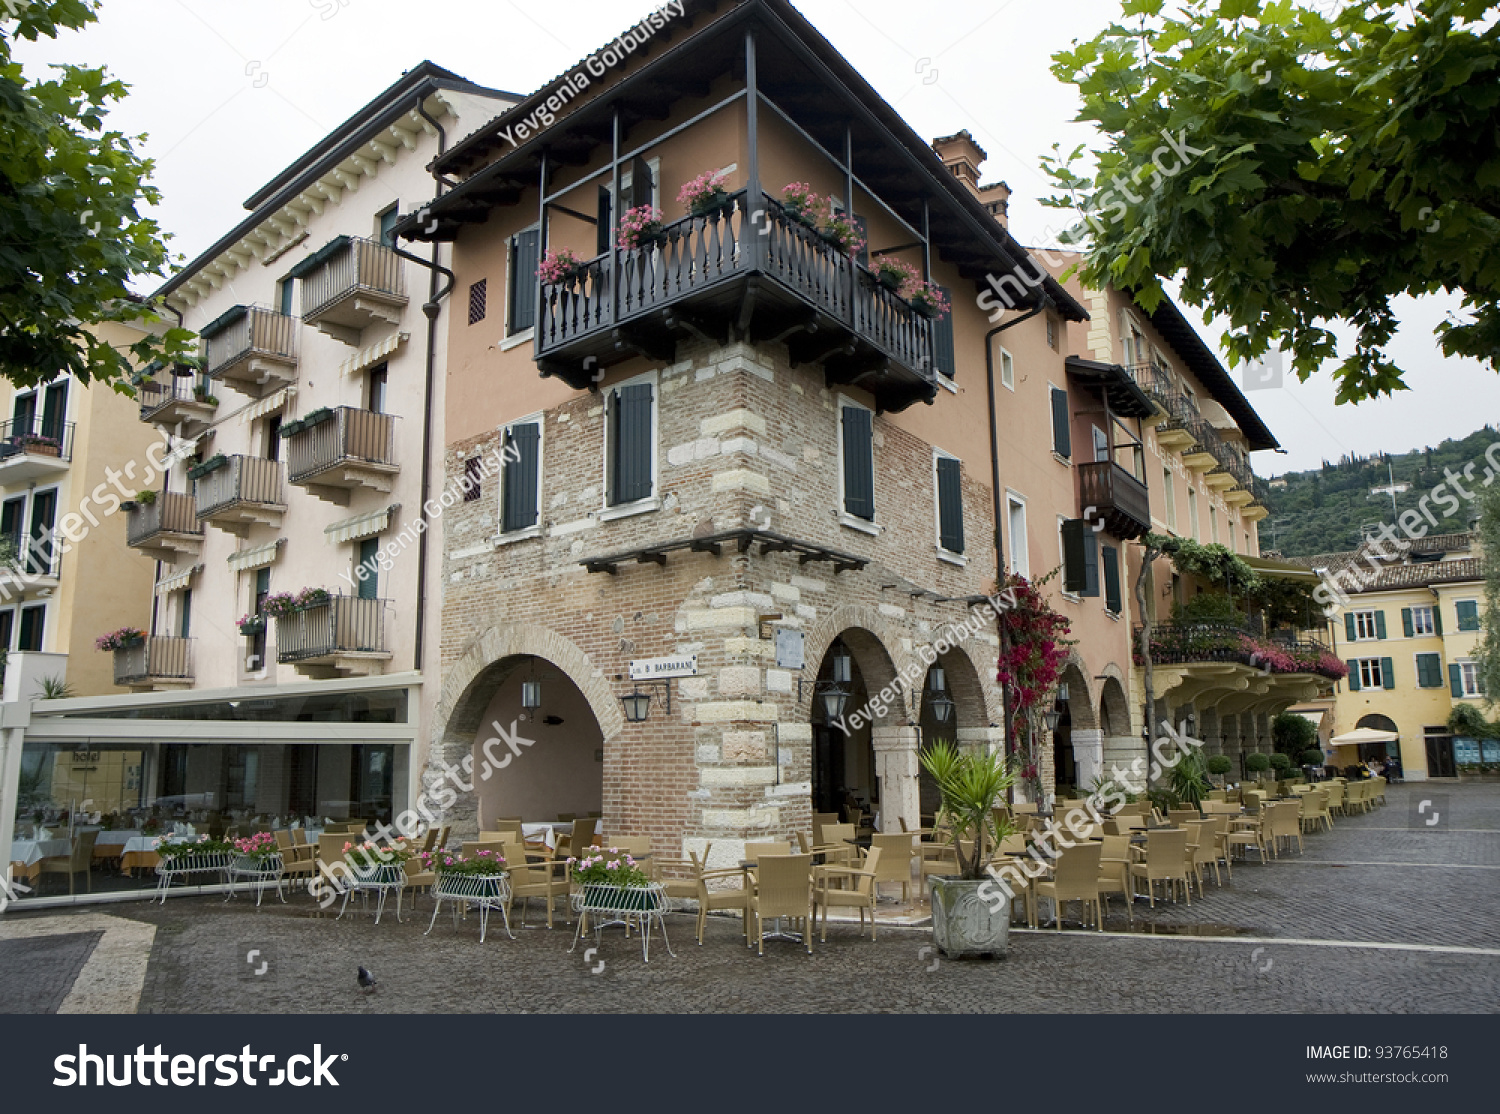 Typical architecture of houses and restaurants in italian for Architecture firms in italy